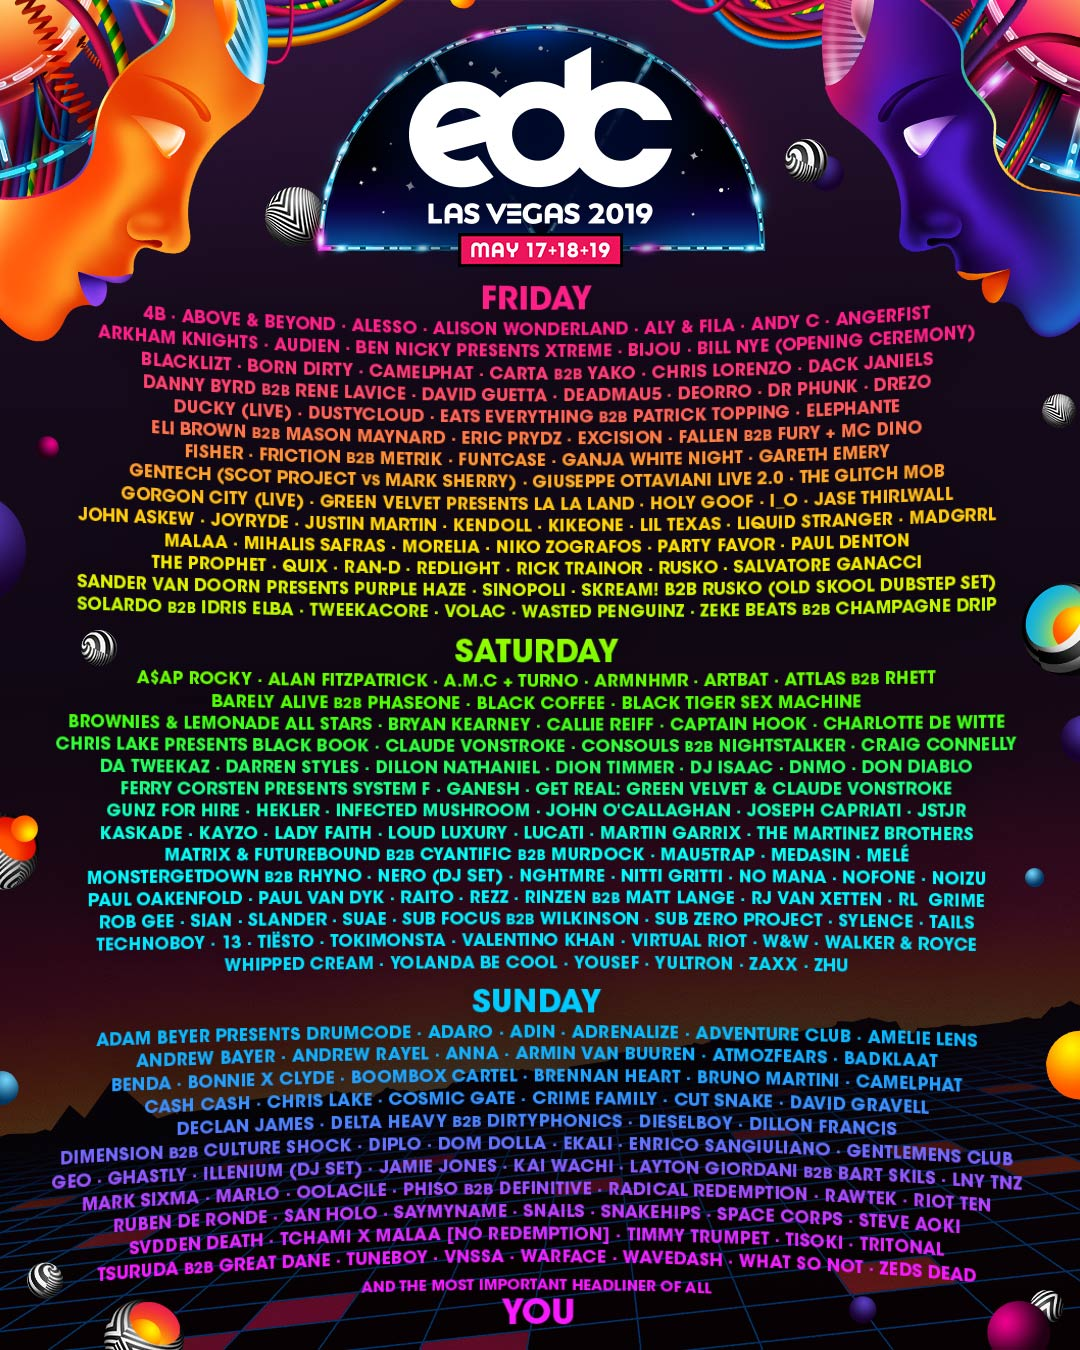 Official Line-Up for EDC - Las Vegas 2019